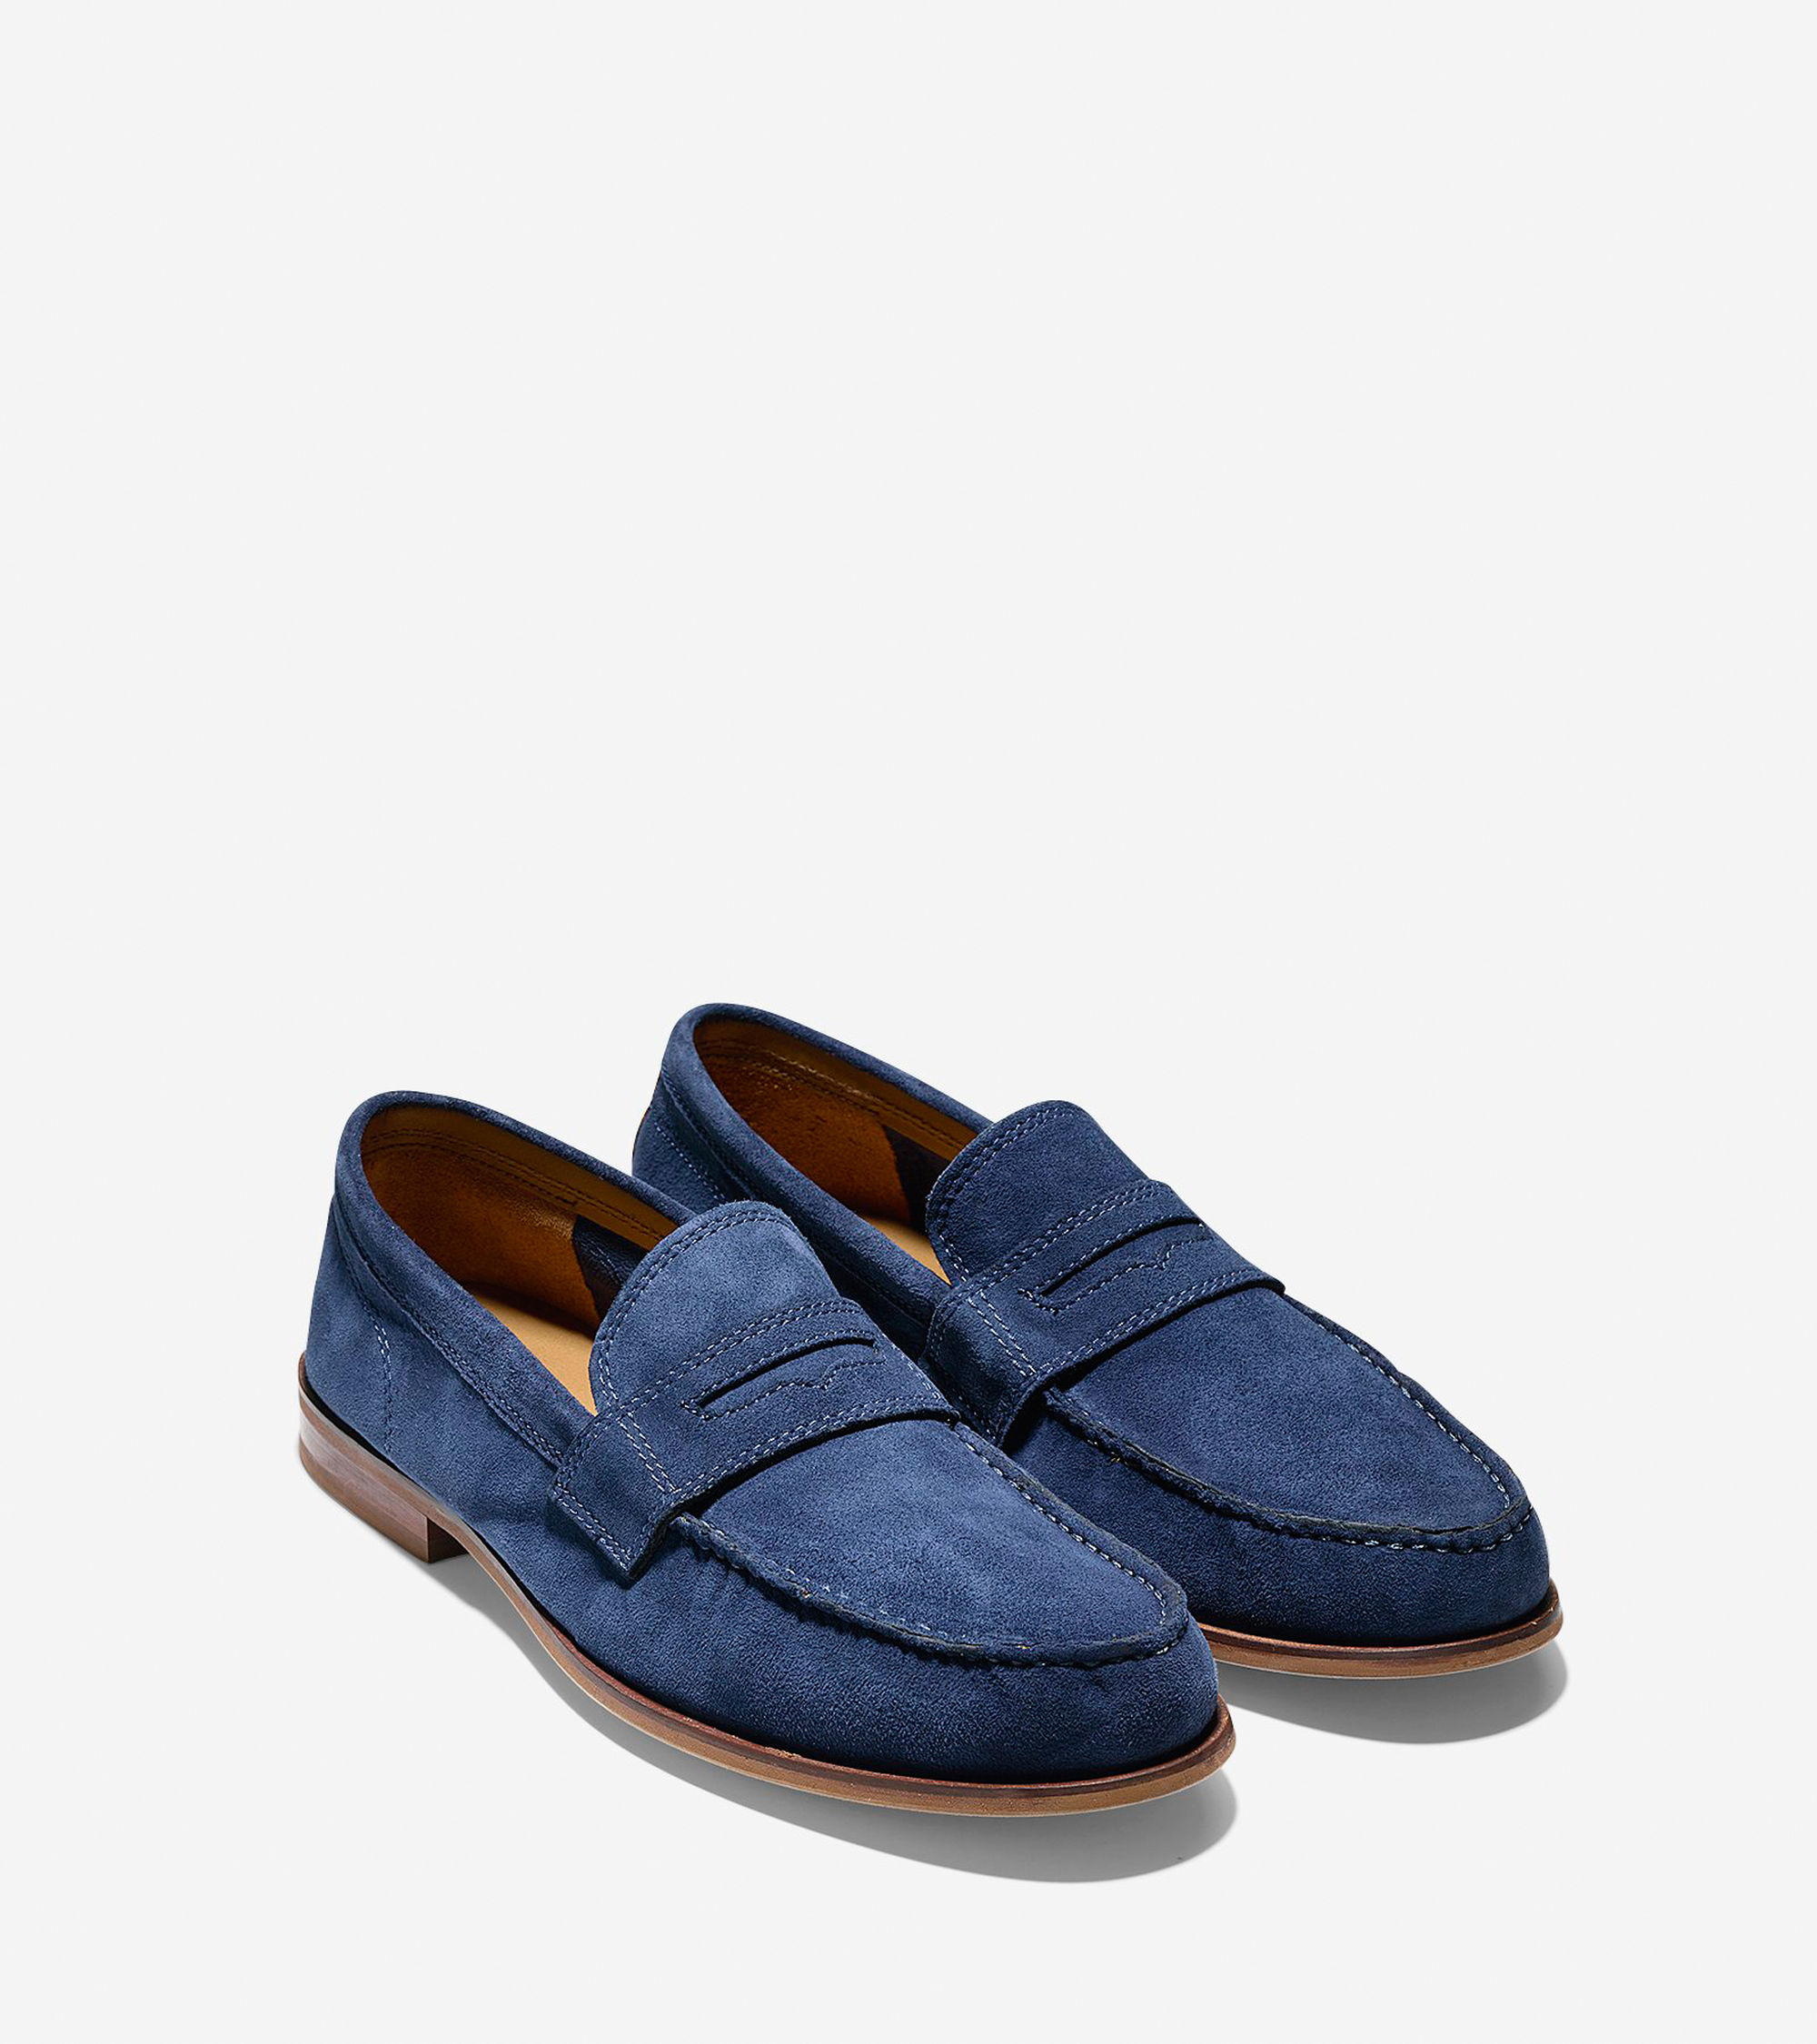 Sperry men's slip-on shoes are available in an array of styles, including sleek venetian leather loafers, one-eye loafers, penny loafers, drivers, oxfords, and more. These easy-wear slip-on shoes for men at Sperry are made from materials like canvas, leather, and suede to suit your tastes.